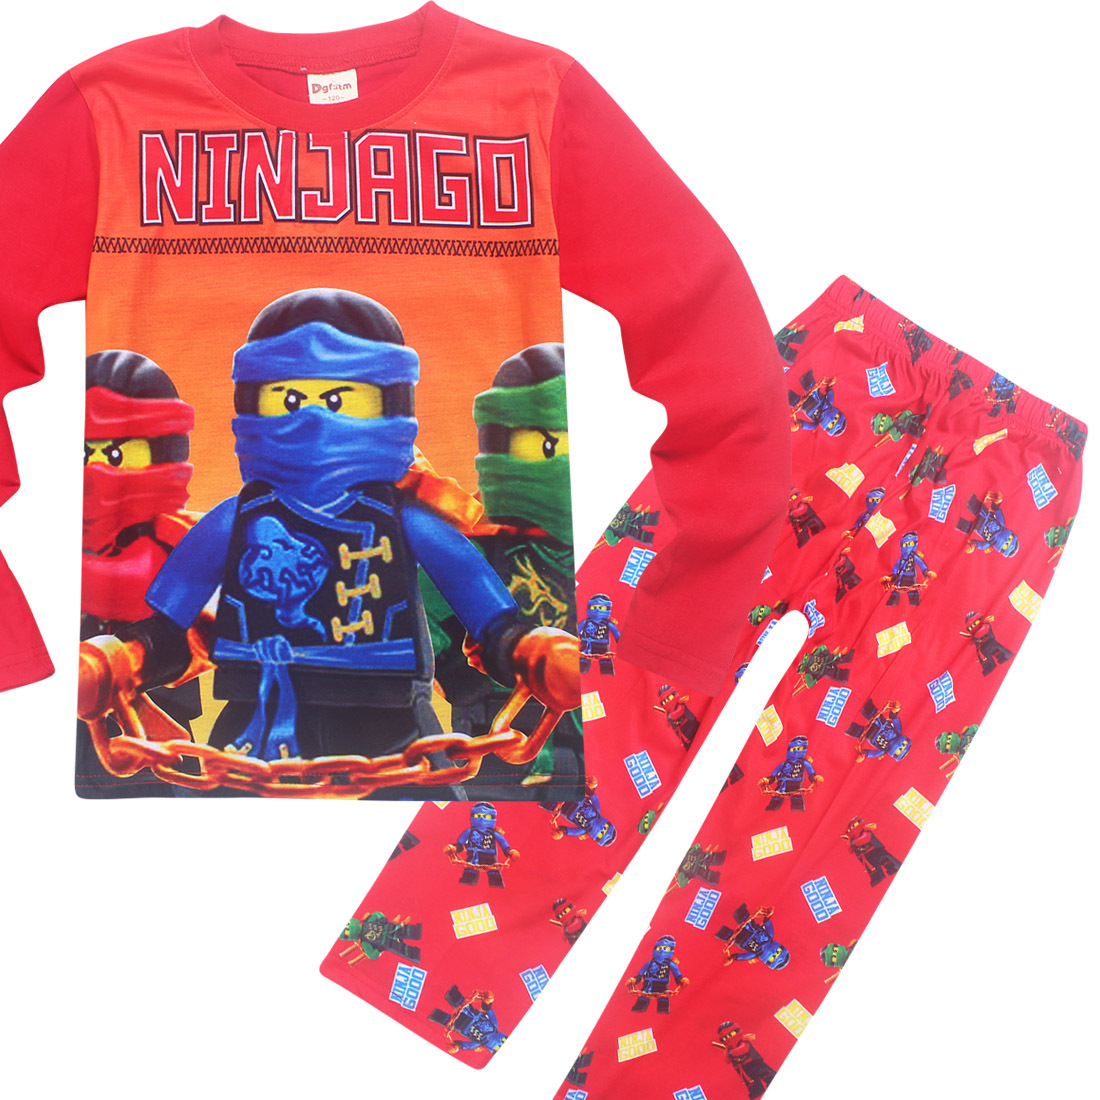 Toddler Kds Boy Ninjago Sleepwear Ninja Christmas Pajamas For Boys Baby Girls Pyjamas Halloween Party Clothing Children PijamasToddler Kds Boy Ninjago Sleepwear Ninja Christmas Pajamas For Boys Baby Girls Pyjamas Halloween Party Clothing Children Pijamas